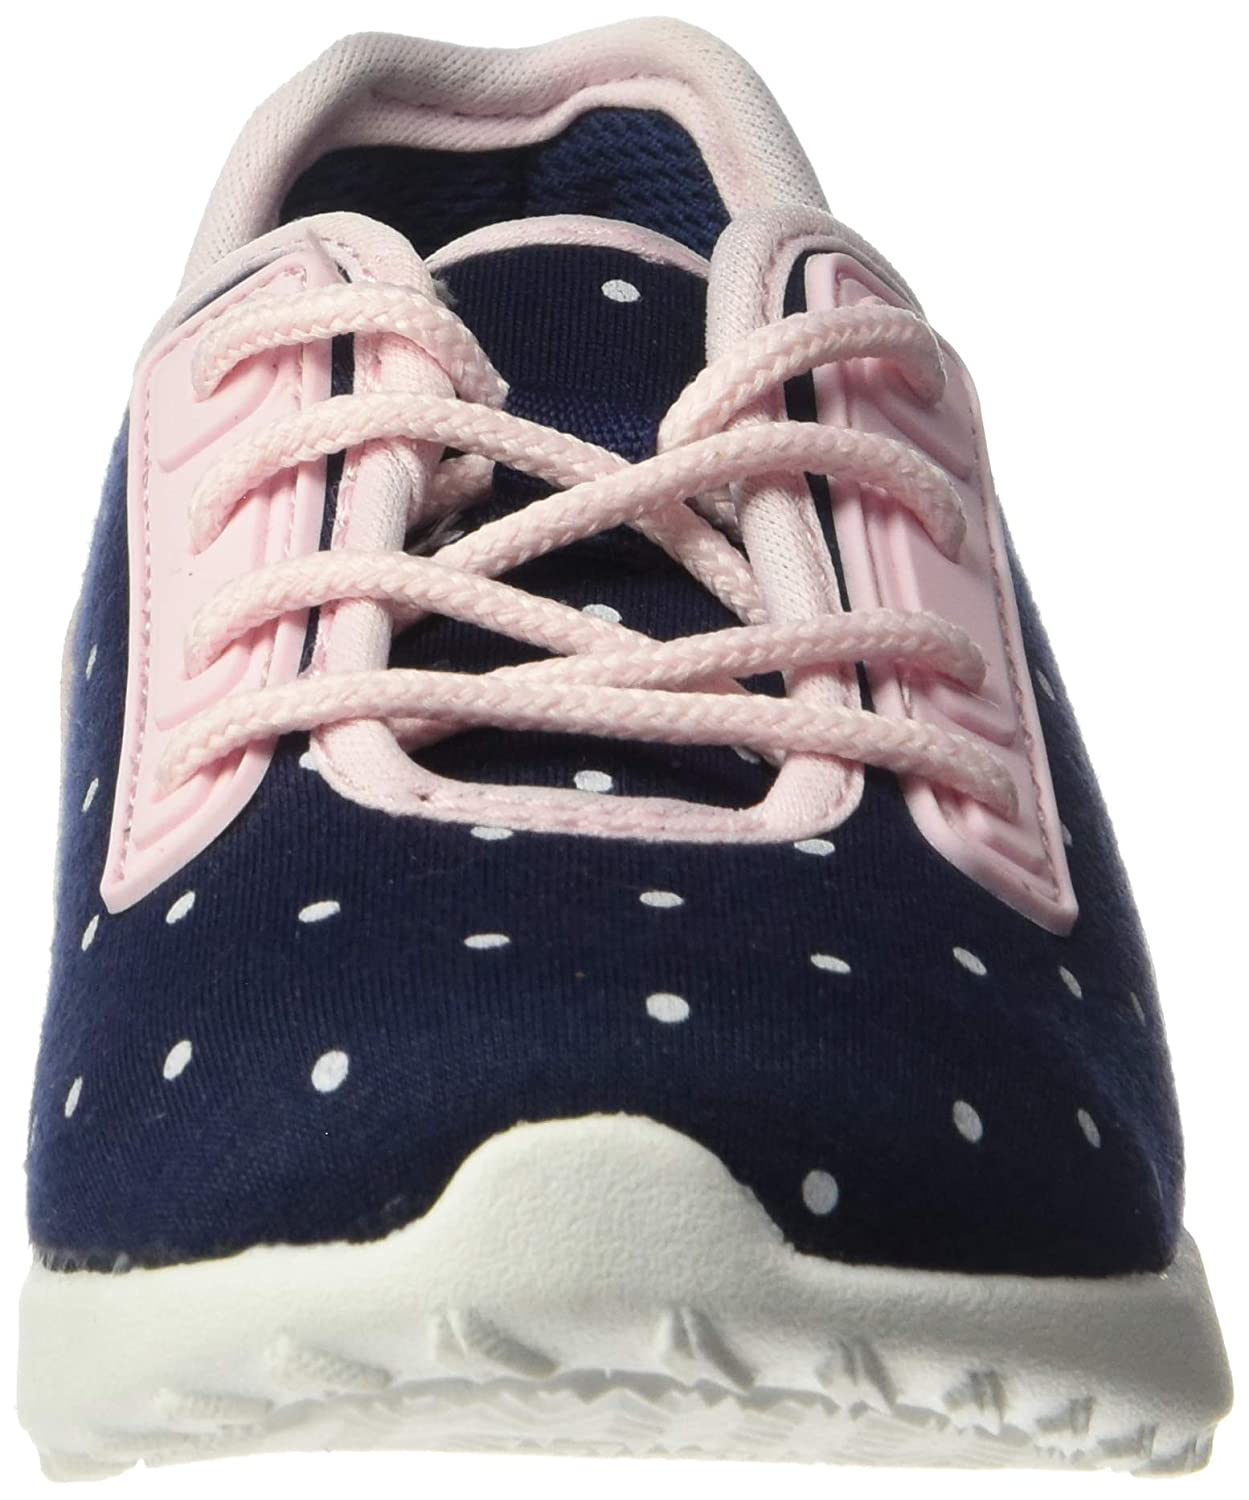 Carters Kids Girls Paow Mesh Athletic Sneaker with Bungee Laces